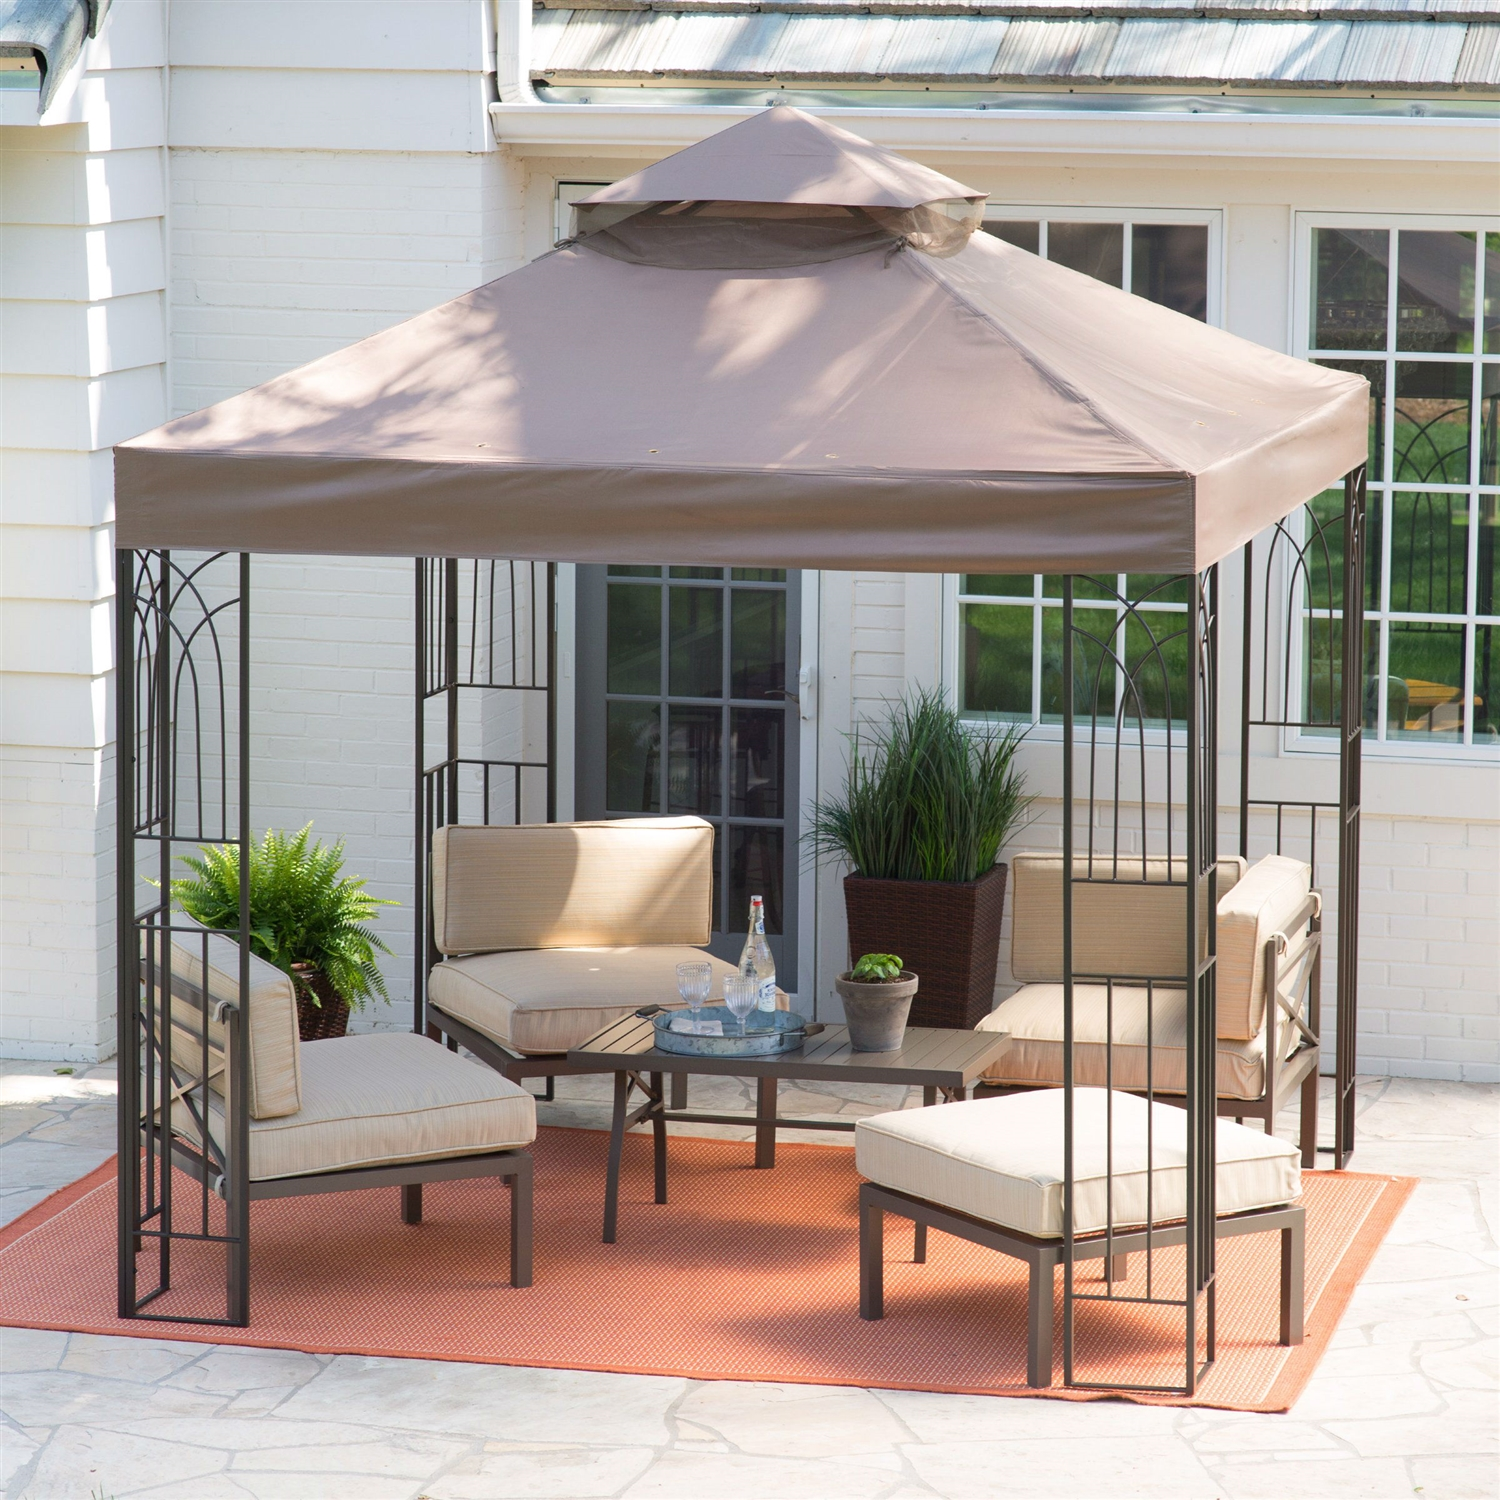 8-Ft x 8-Ft Steel Metal Frame Gazebo with Outdoor Weather Resistant Top & 8-Ft x 8-Ft Steel Metal Frame Gazebo with Outdoor Weather ...